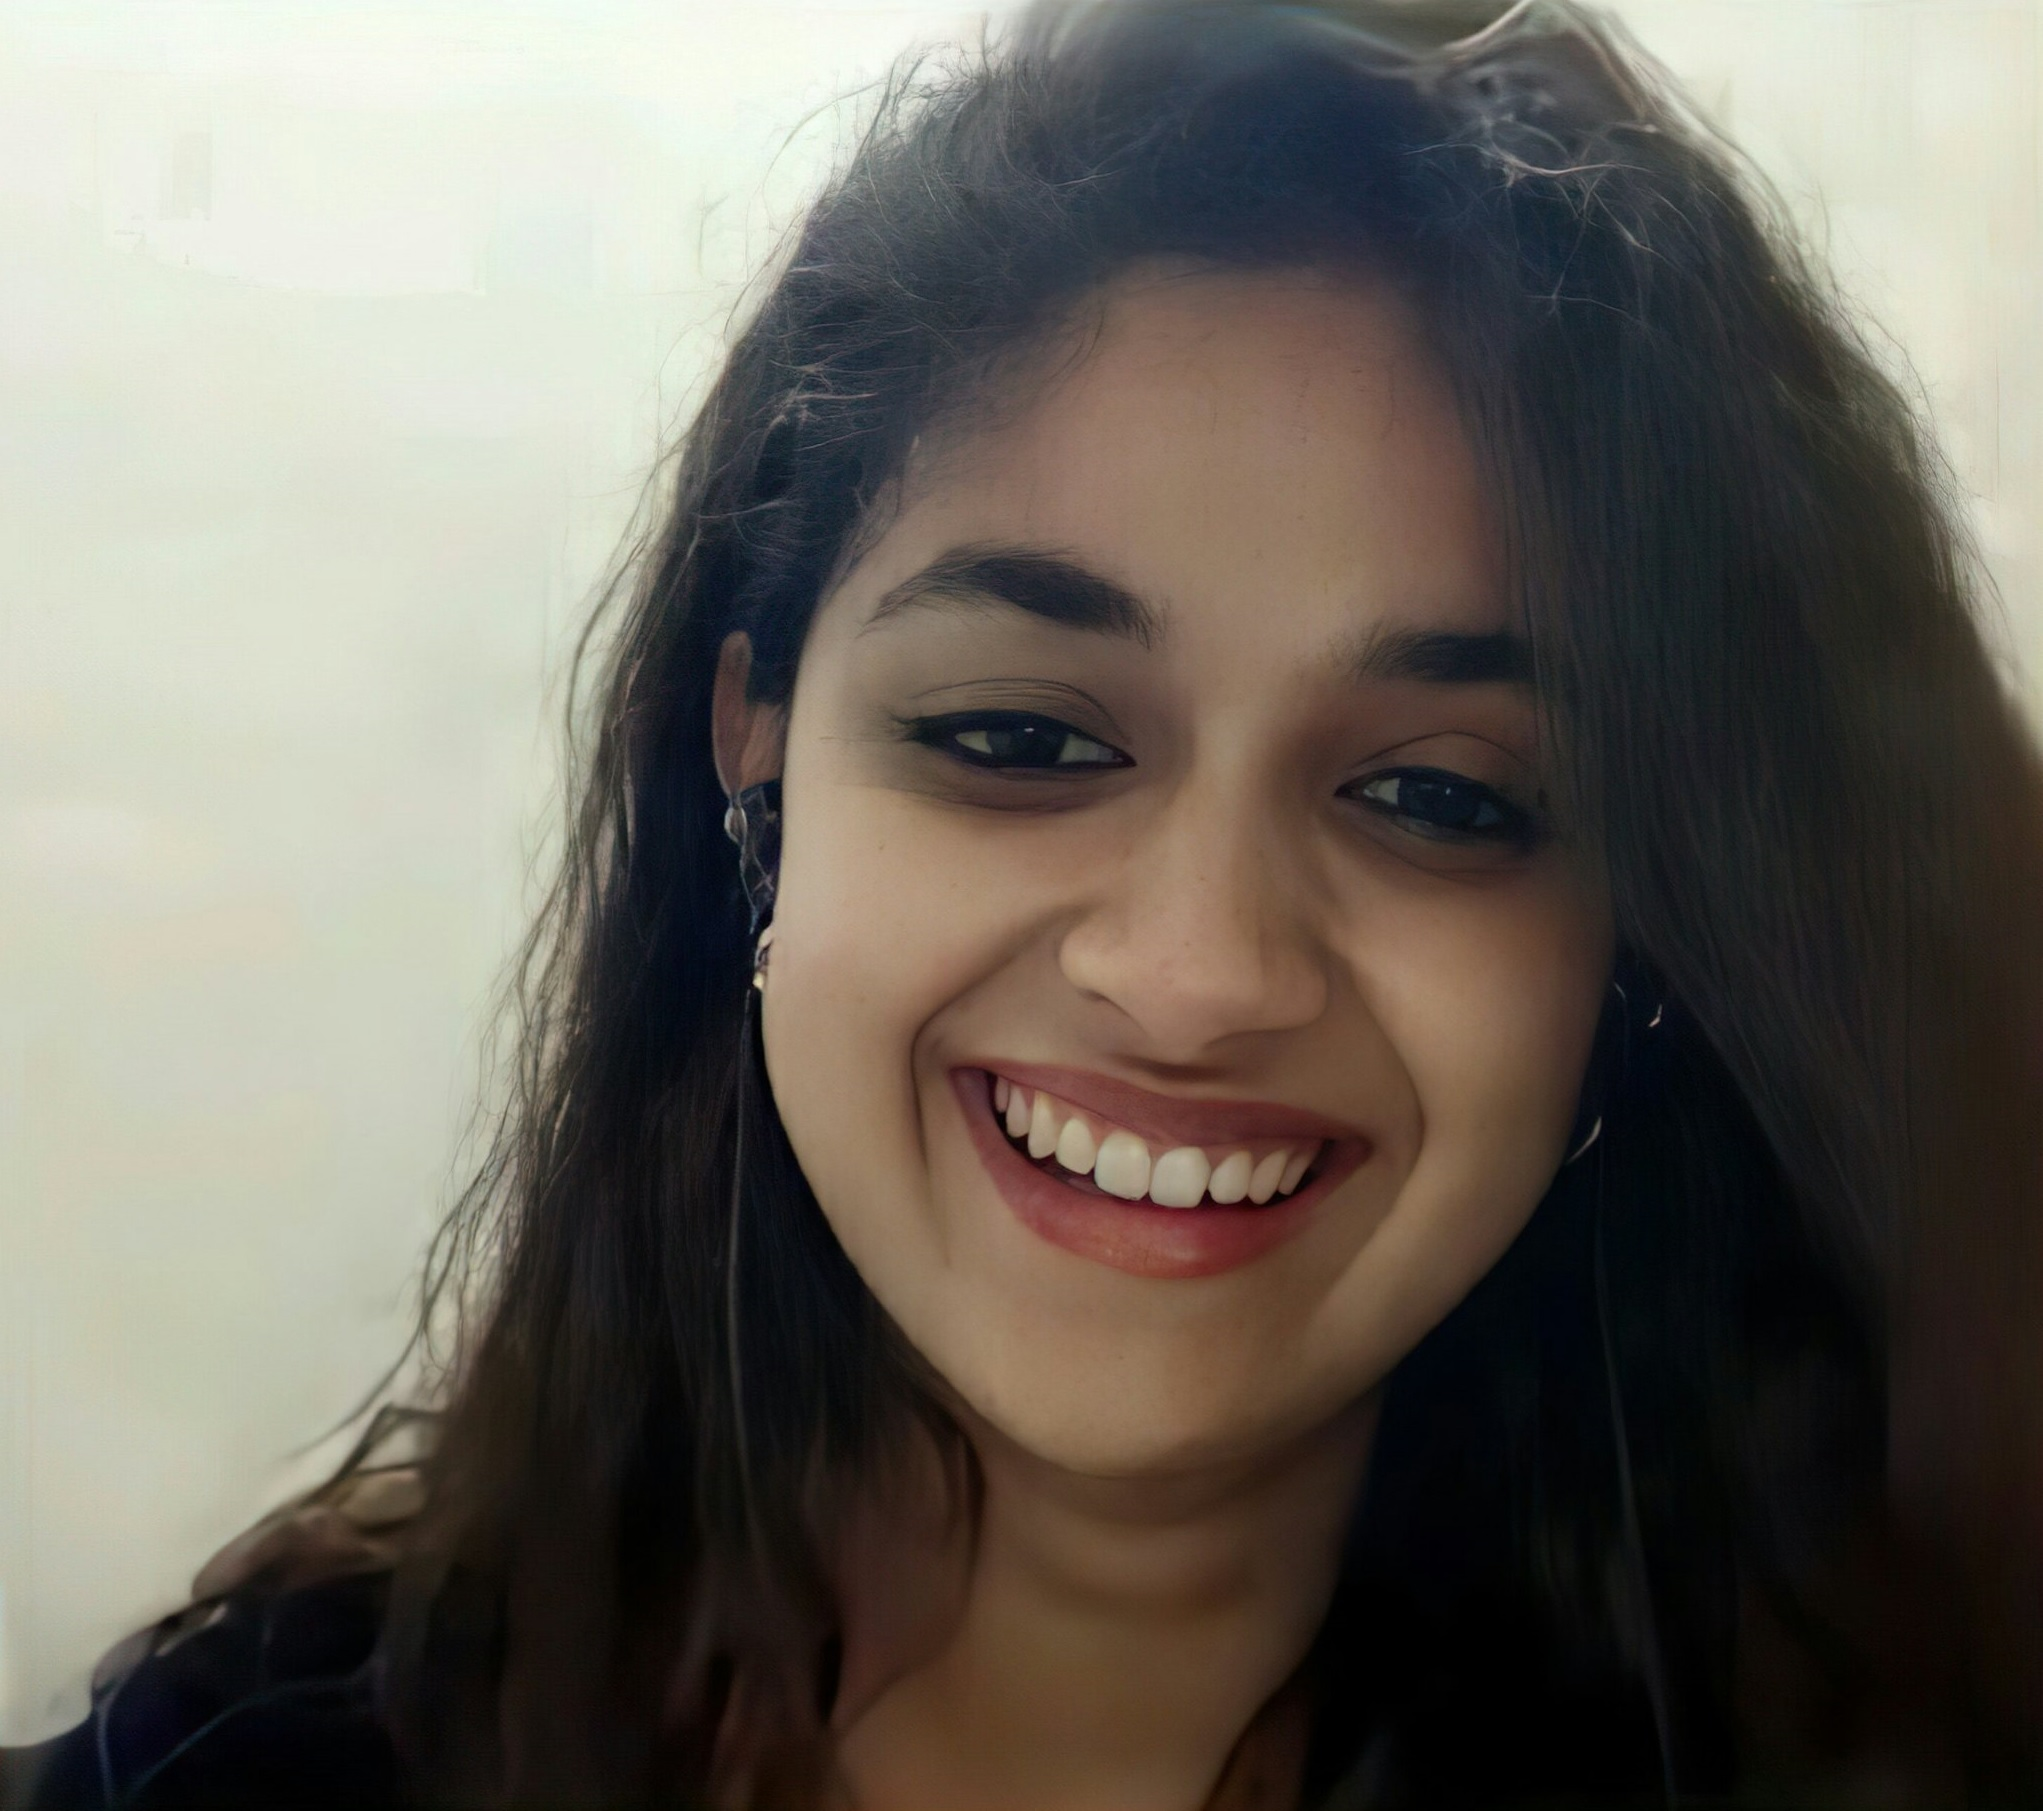 Keerthy Suresh with Chubby Cheeks Smile while in Video Live Chat